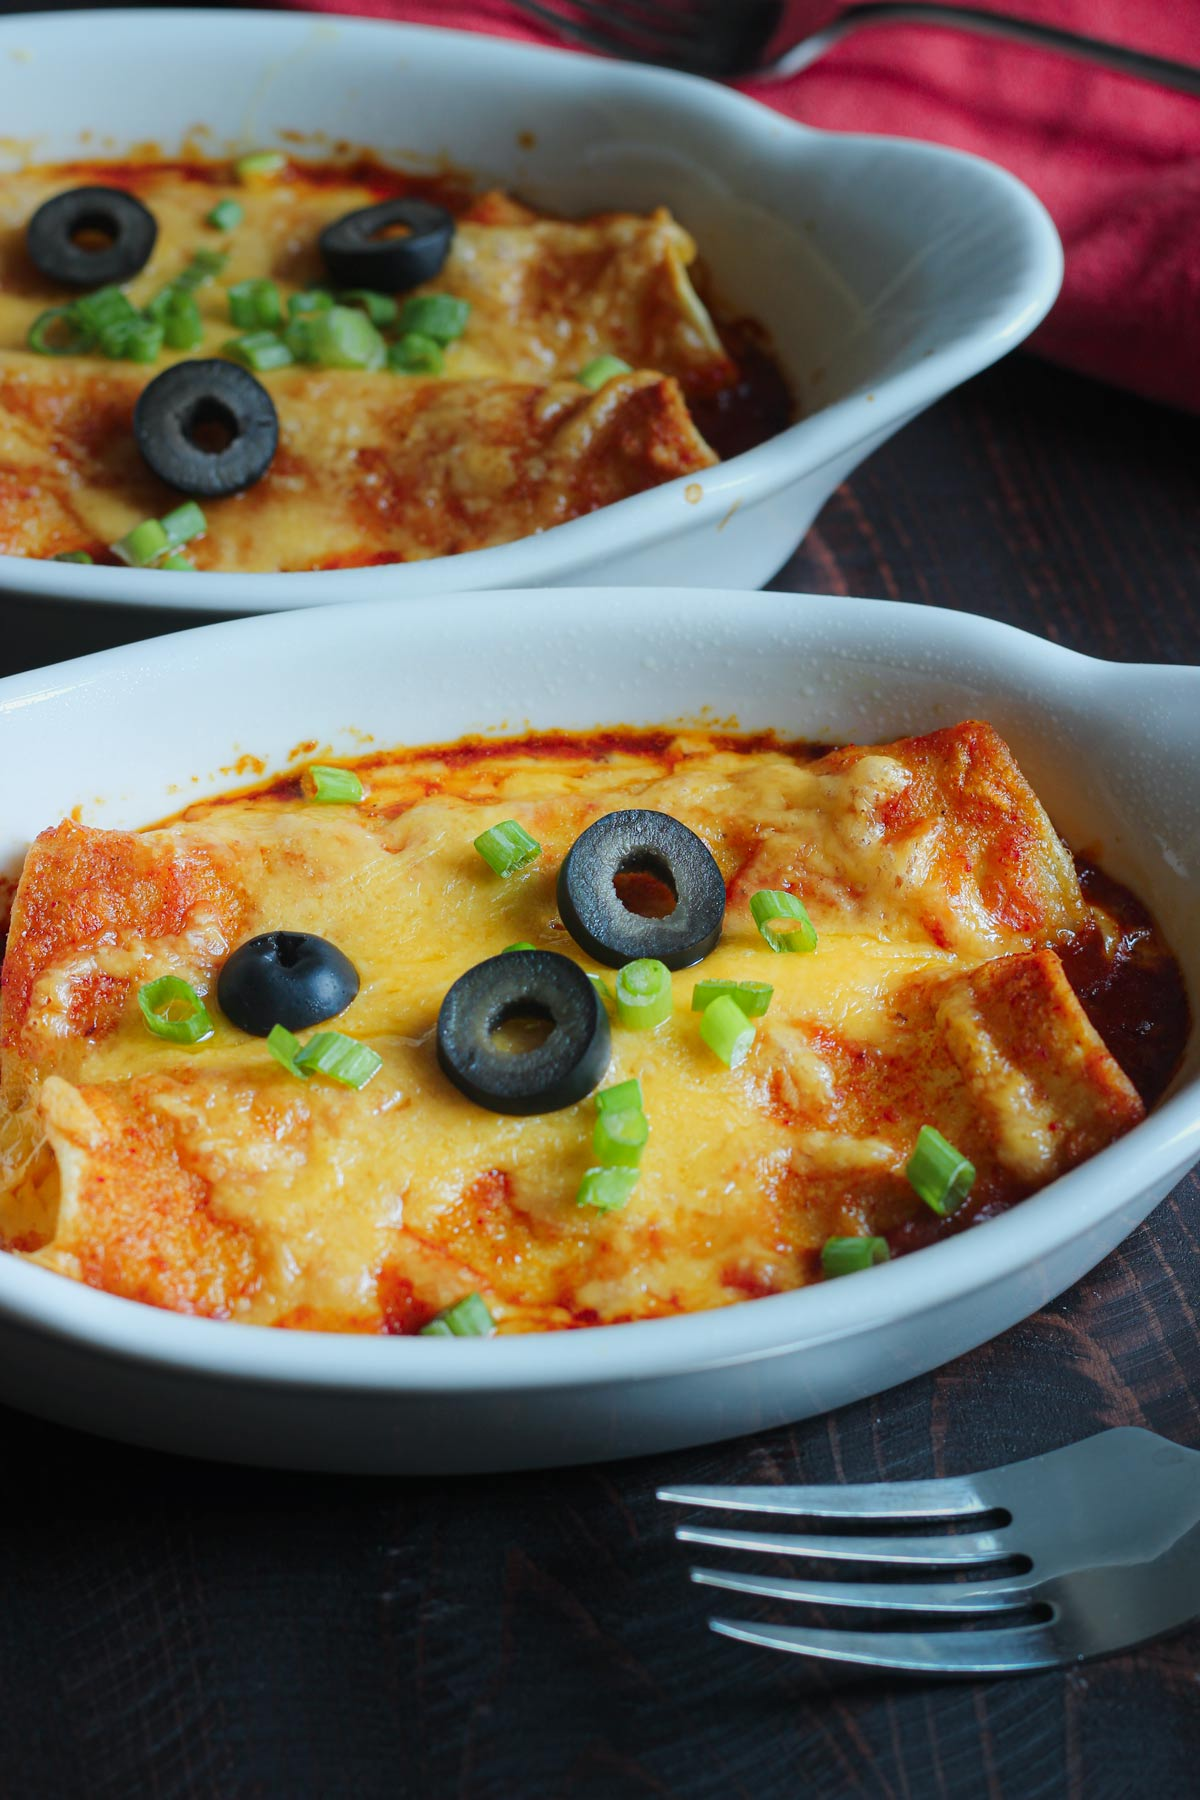 gratin dishes each holding two cheese enchiladas topped with sliced olives and green onions.